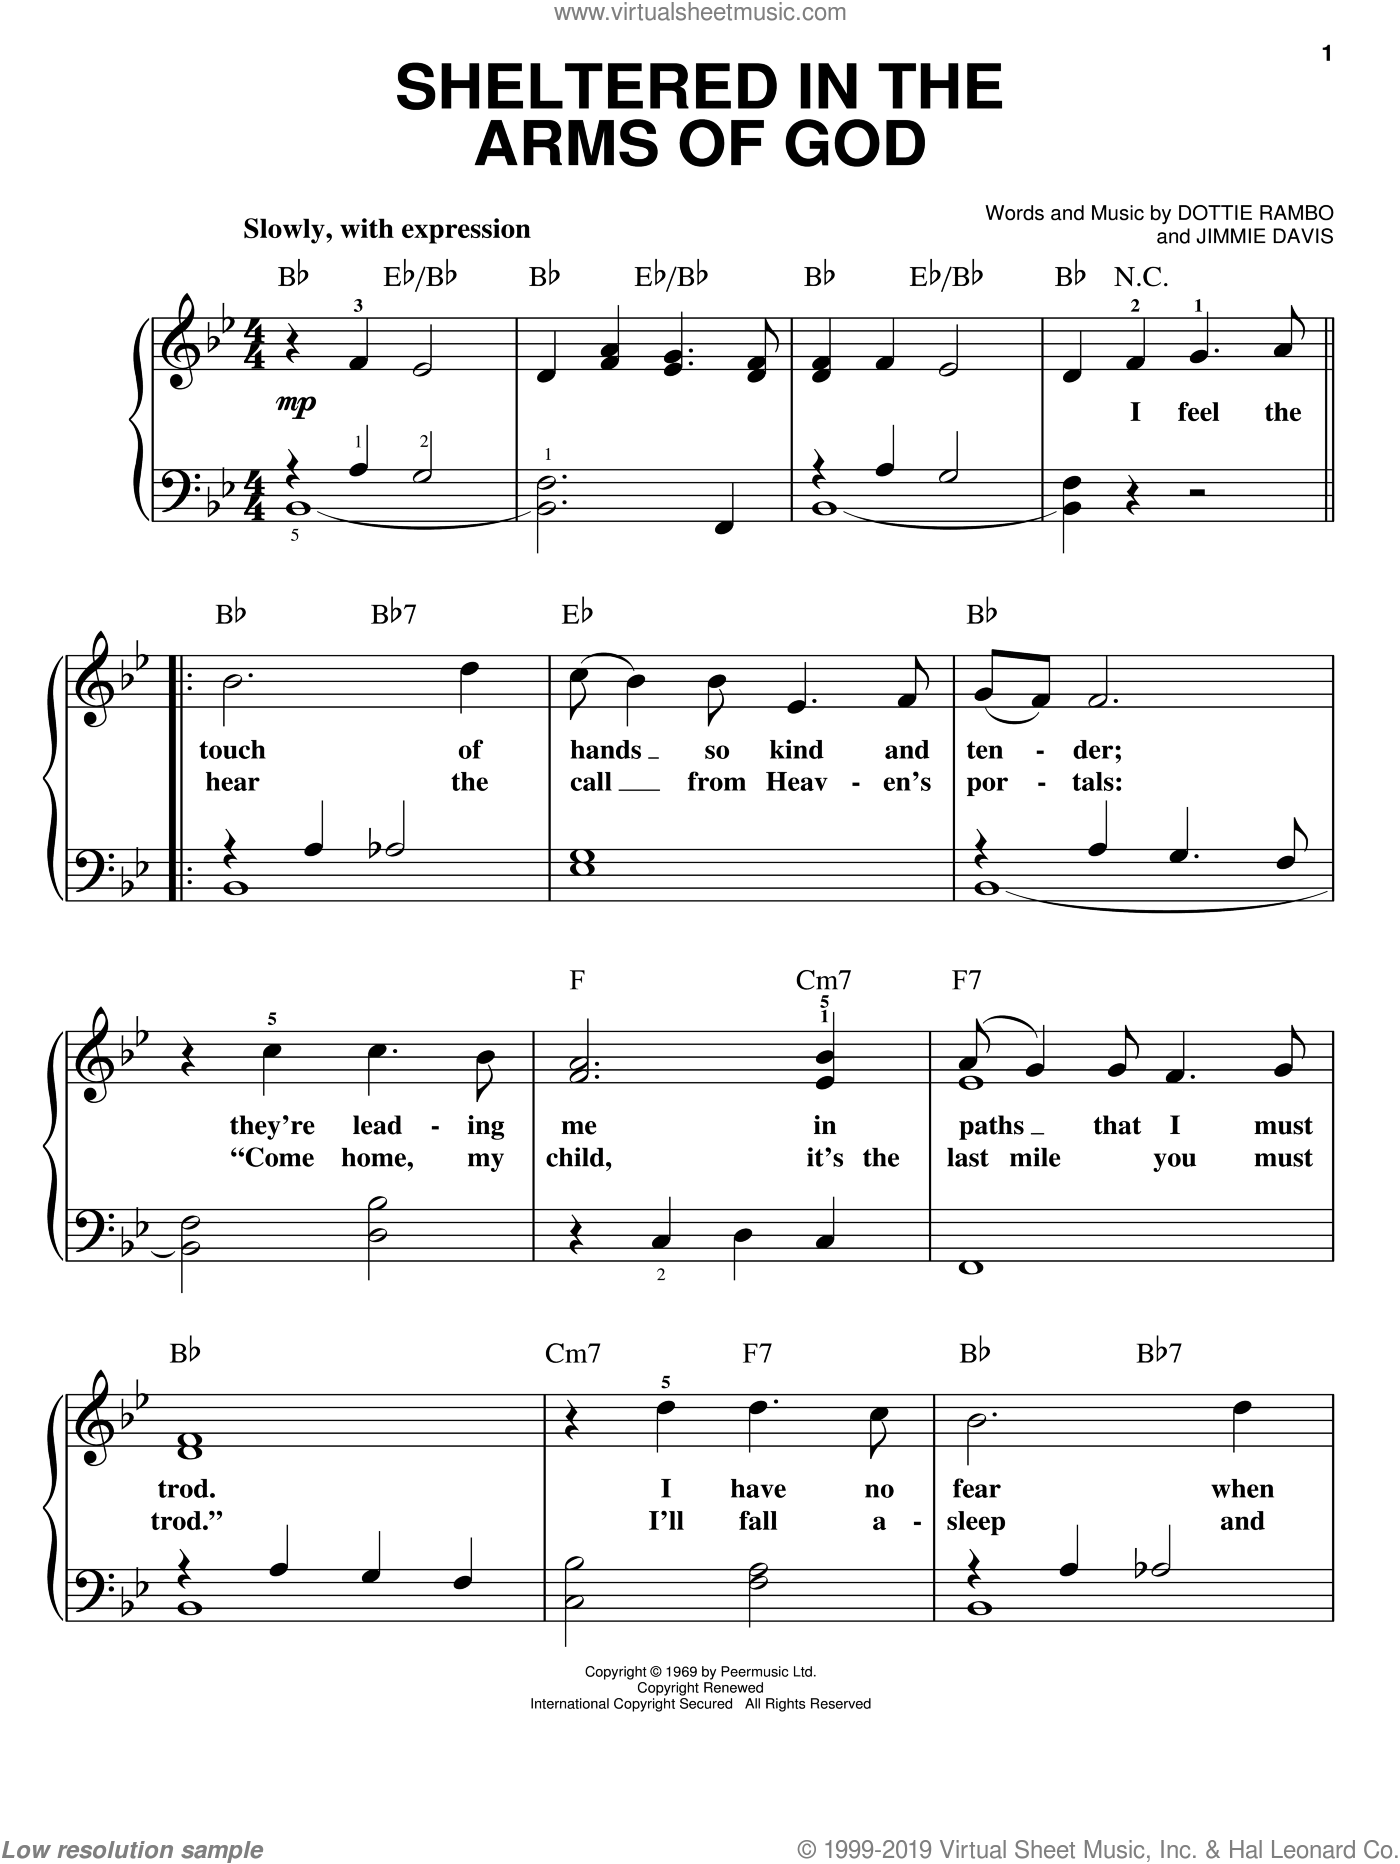 Sheltered In The Arms Of God sheet music for piano solo by Dottie Rambo and Jimmie Davis, easy skill level